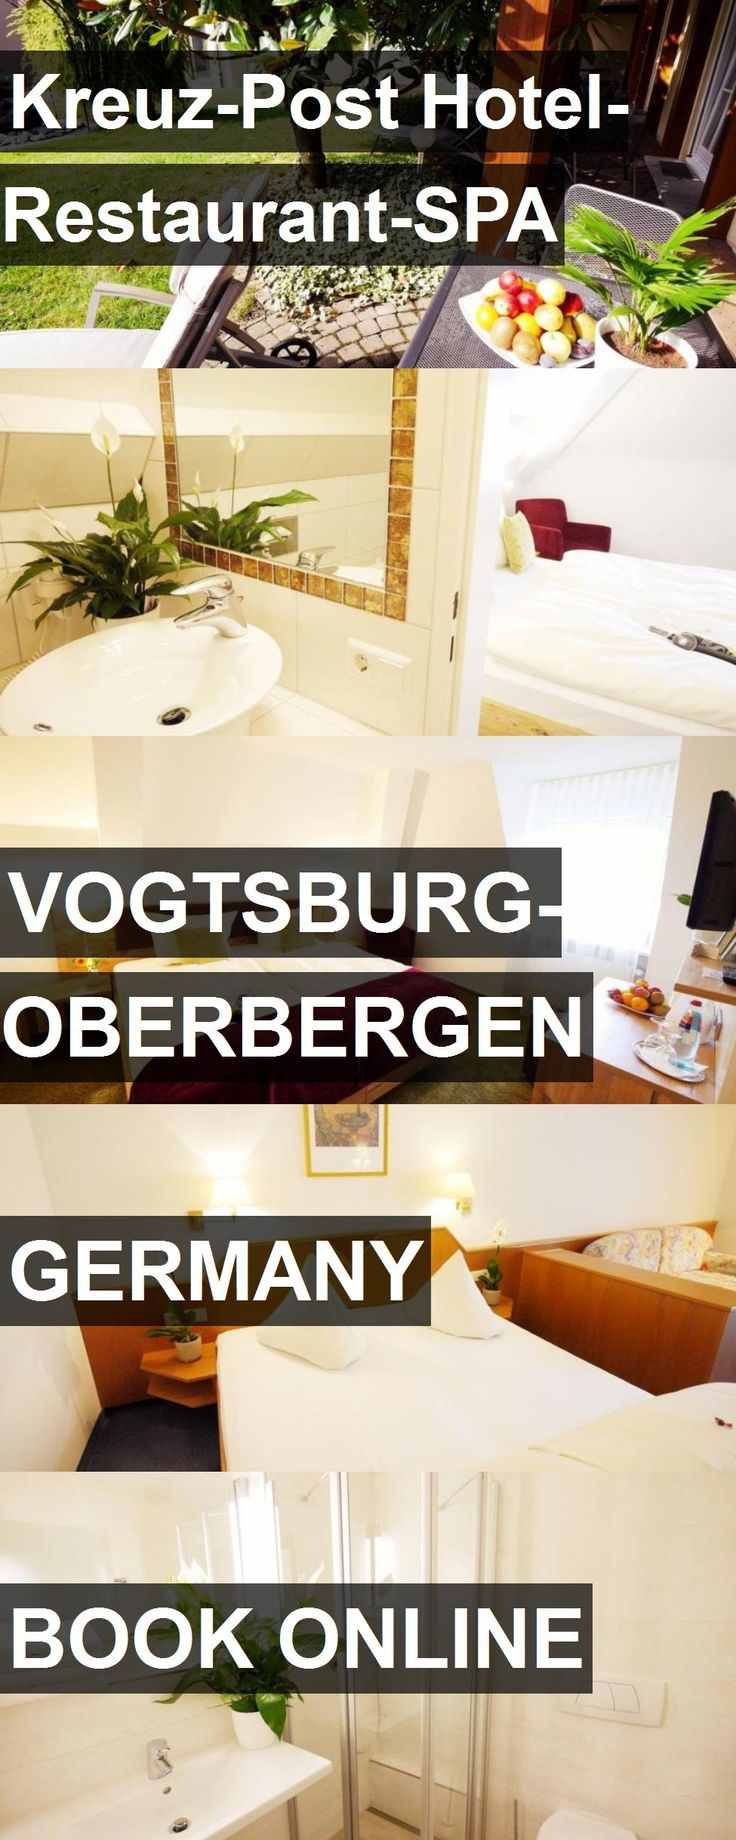 Hotel Kreuz-Post Hotel-Restaurant-SPA in Vogtsburg-Oberbergen, Germany. For more information, photos, reviews and best prices please follow the link. #Germany #Vogtsburg-Oberbergen #Kreuz-PostHotel-Restaurant-SPA #hotel #travel #vacation